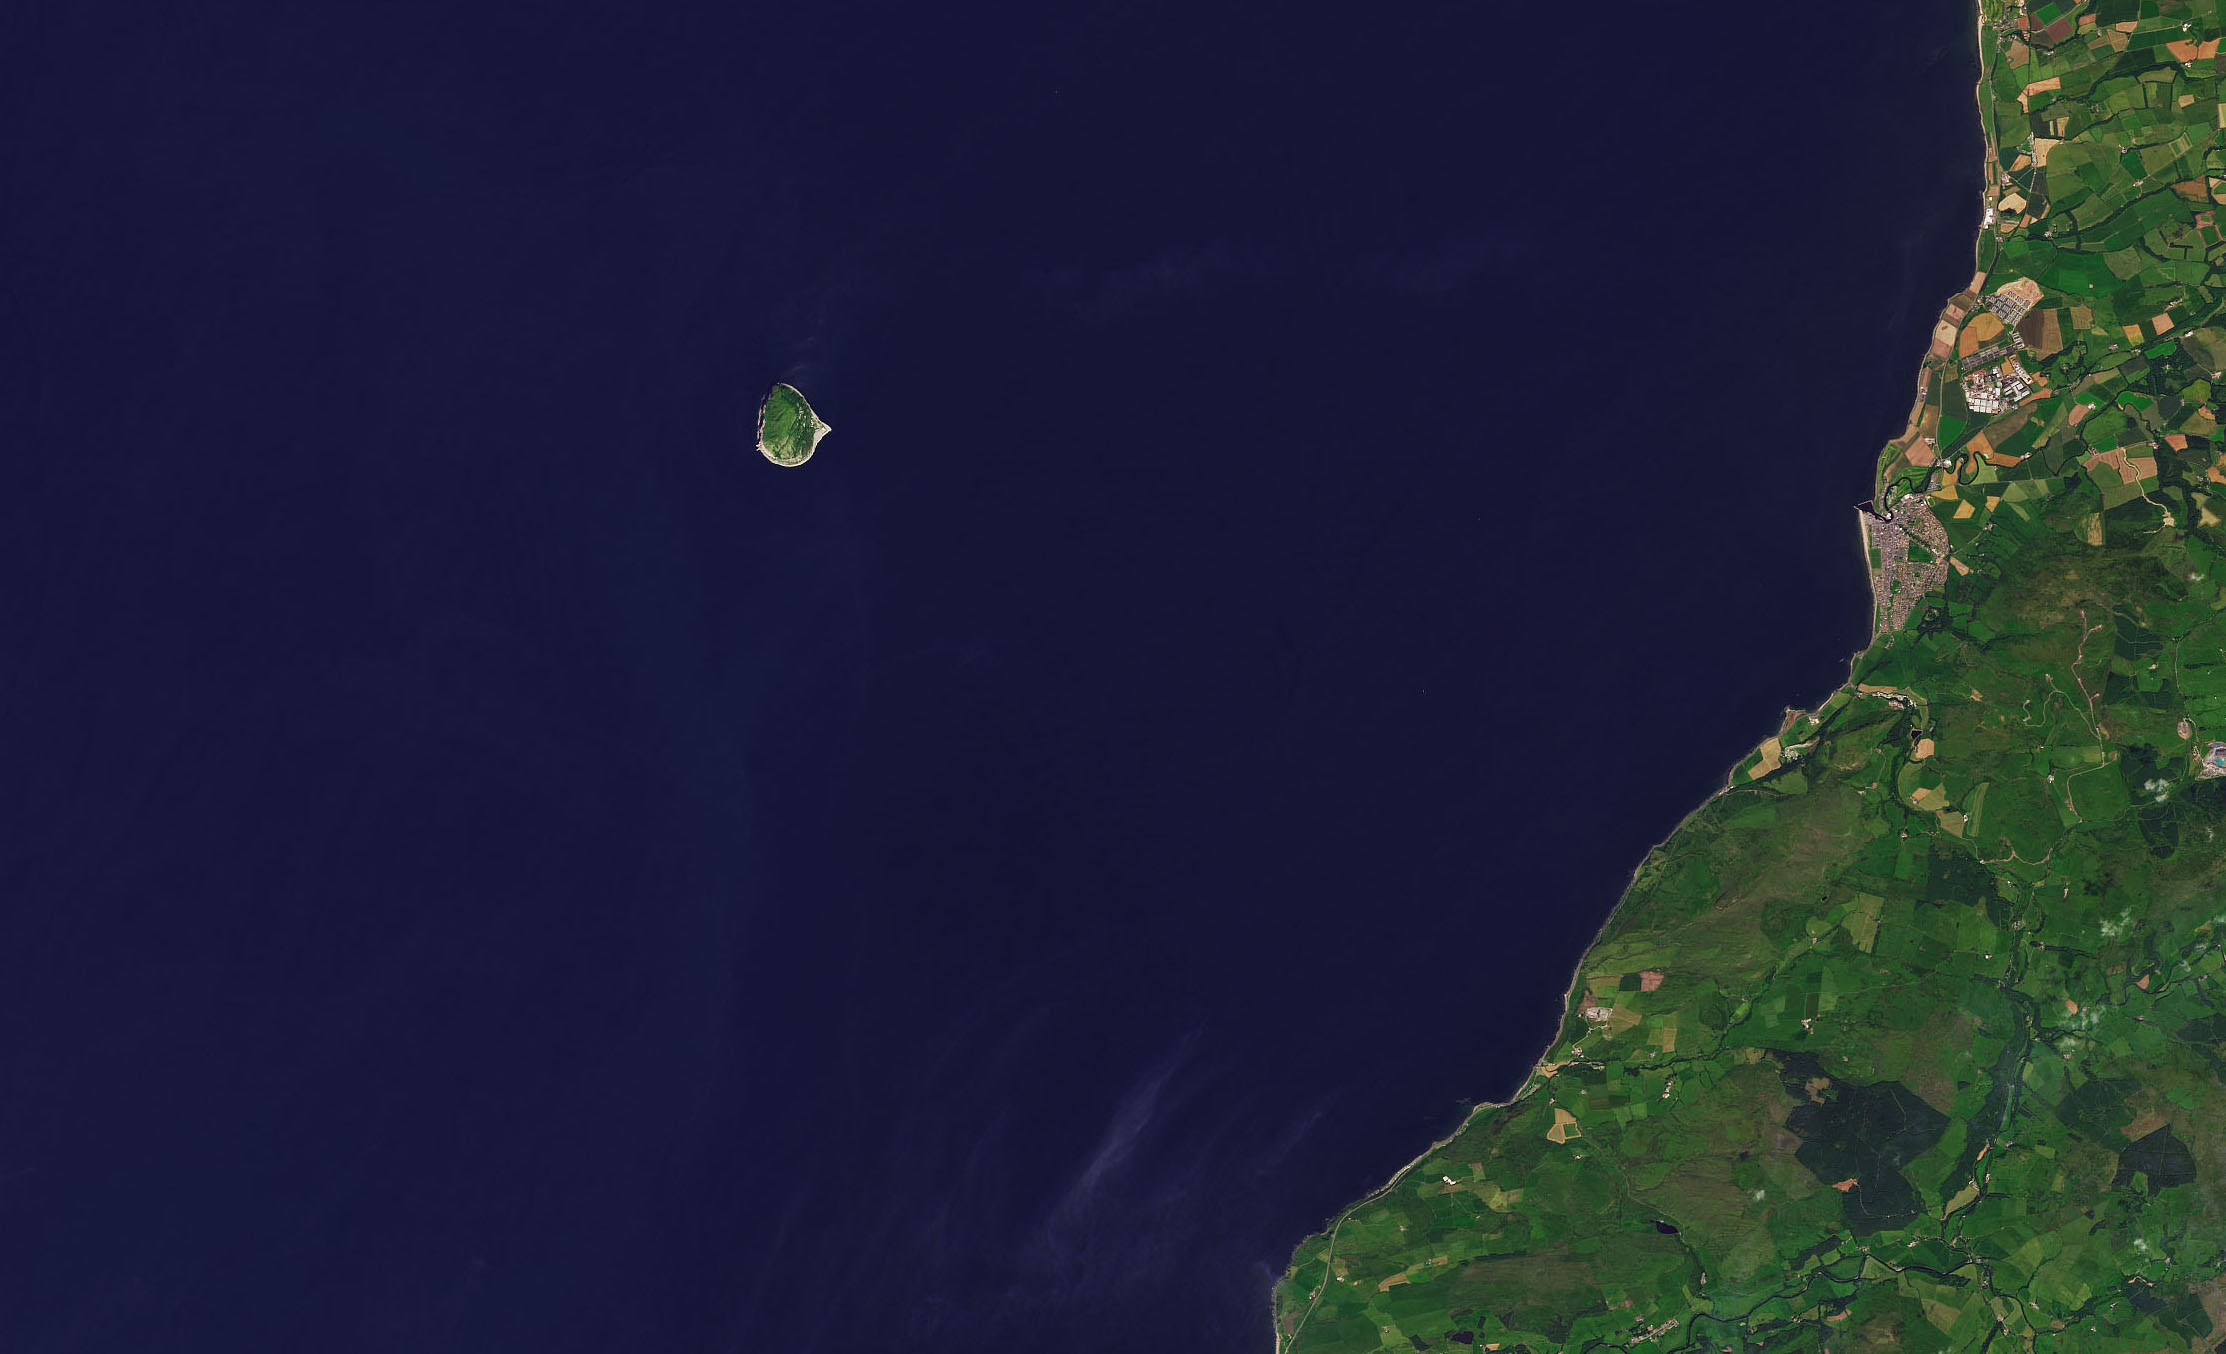 Today's Image of the Day comes from the NASA Earth Observatory and features a look at Ailsa Craig, a tiny islet located 10 miles off the coast of southwestern Scotland.